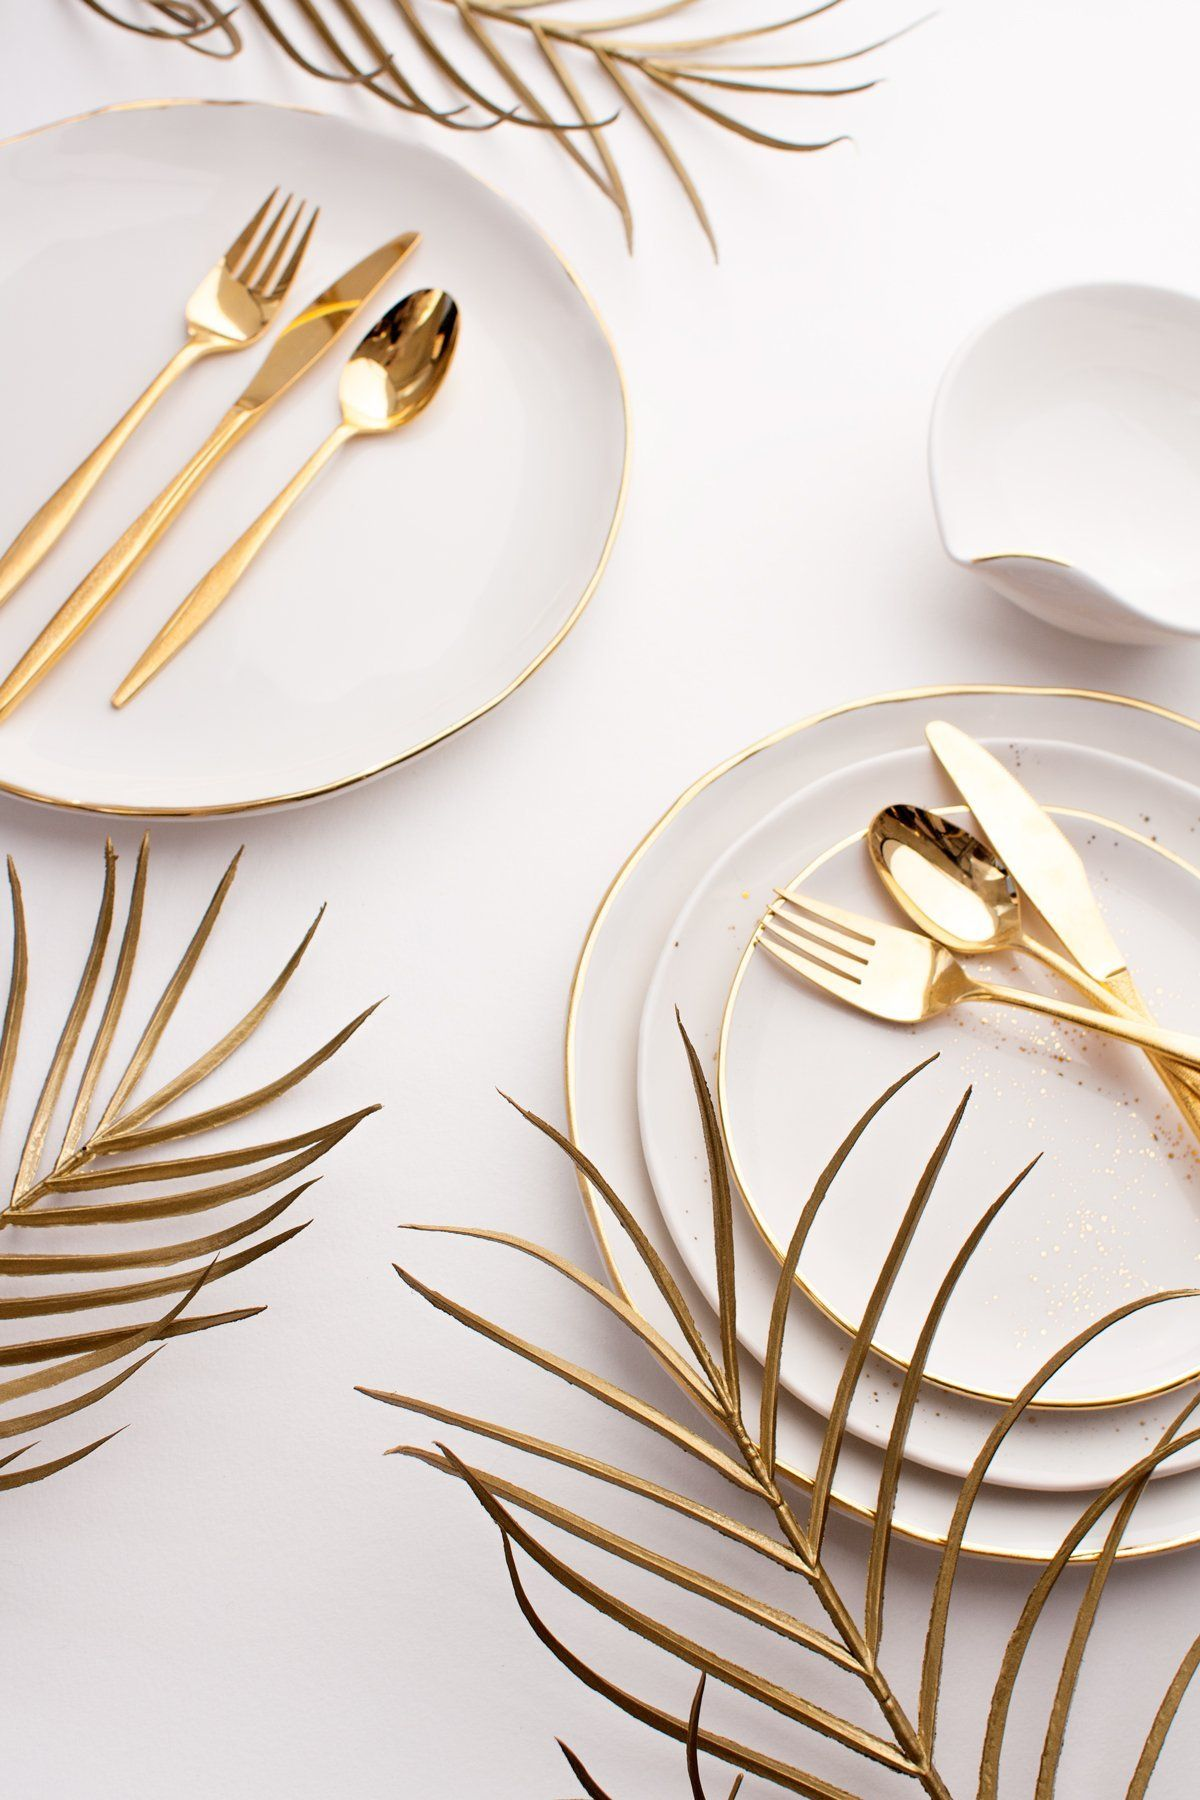 Making Mealtimes Beautiful: Gold Dipped Magnolia Leaf Calligraphy Place Cards